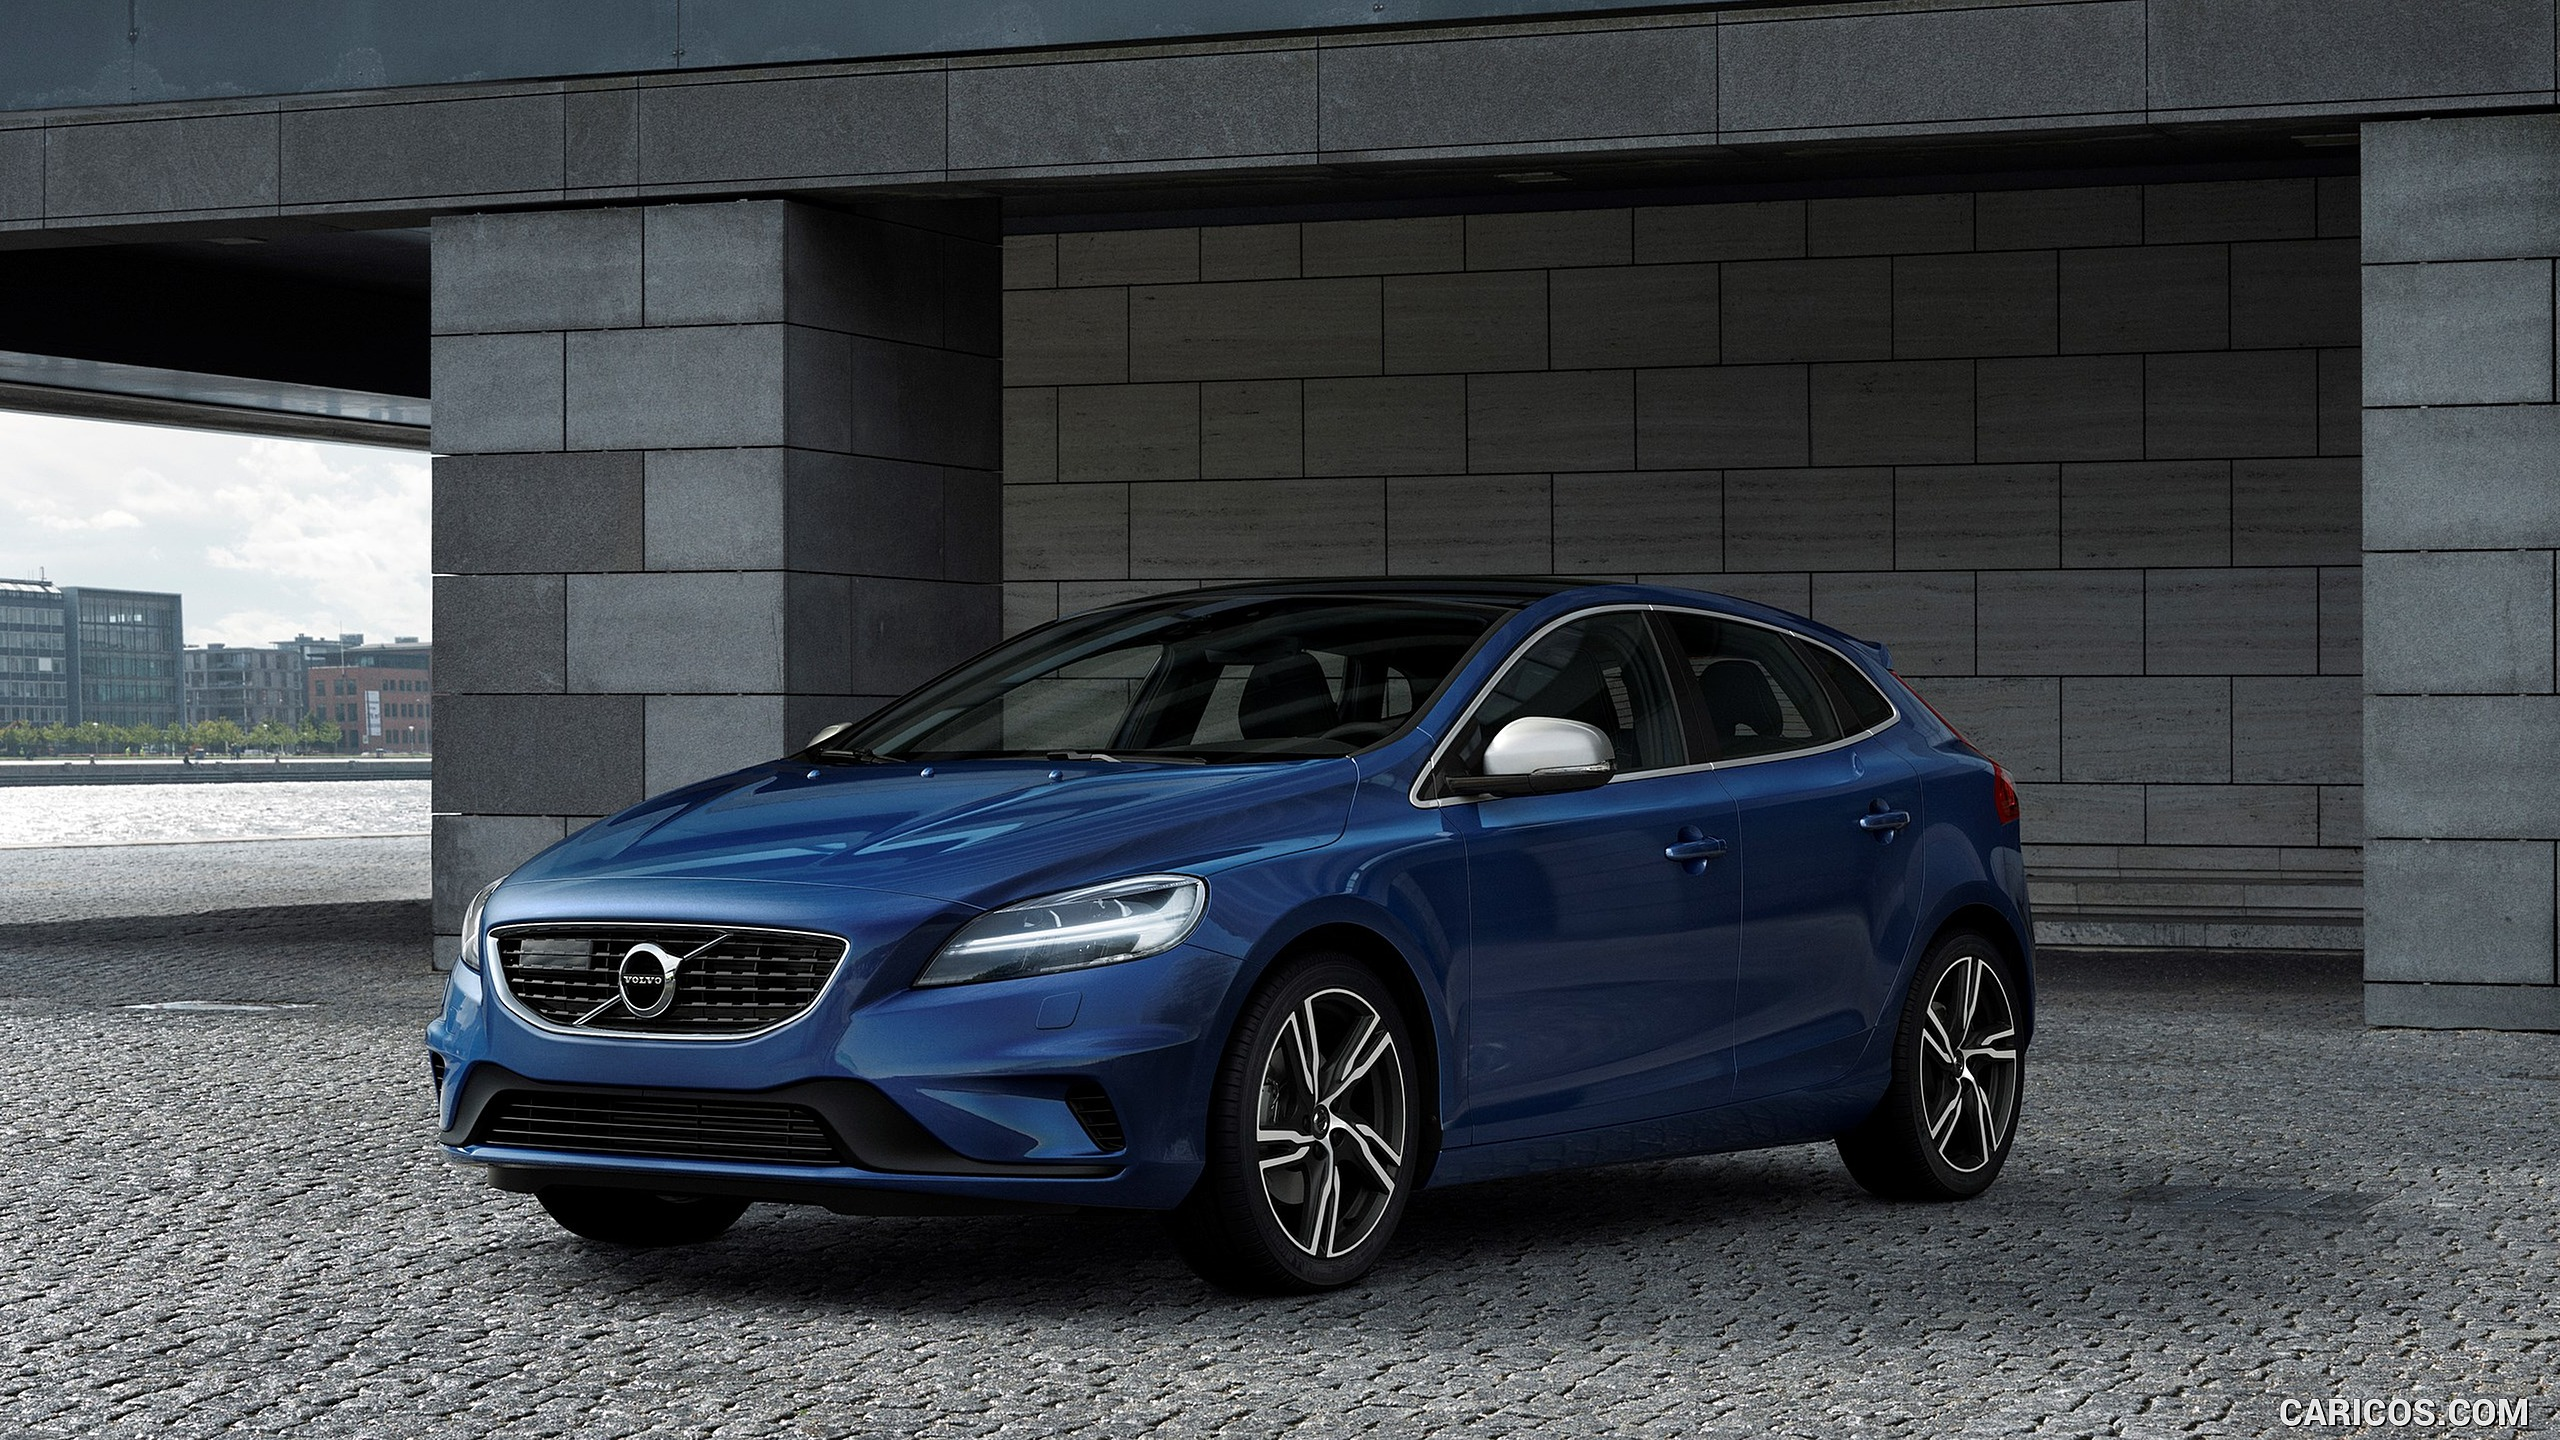 2017 Volvo V40 T5 R design   Front HD Wallpaper 10 2560x1440